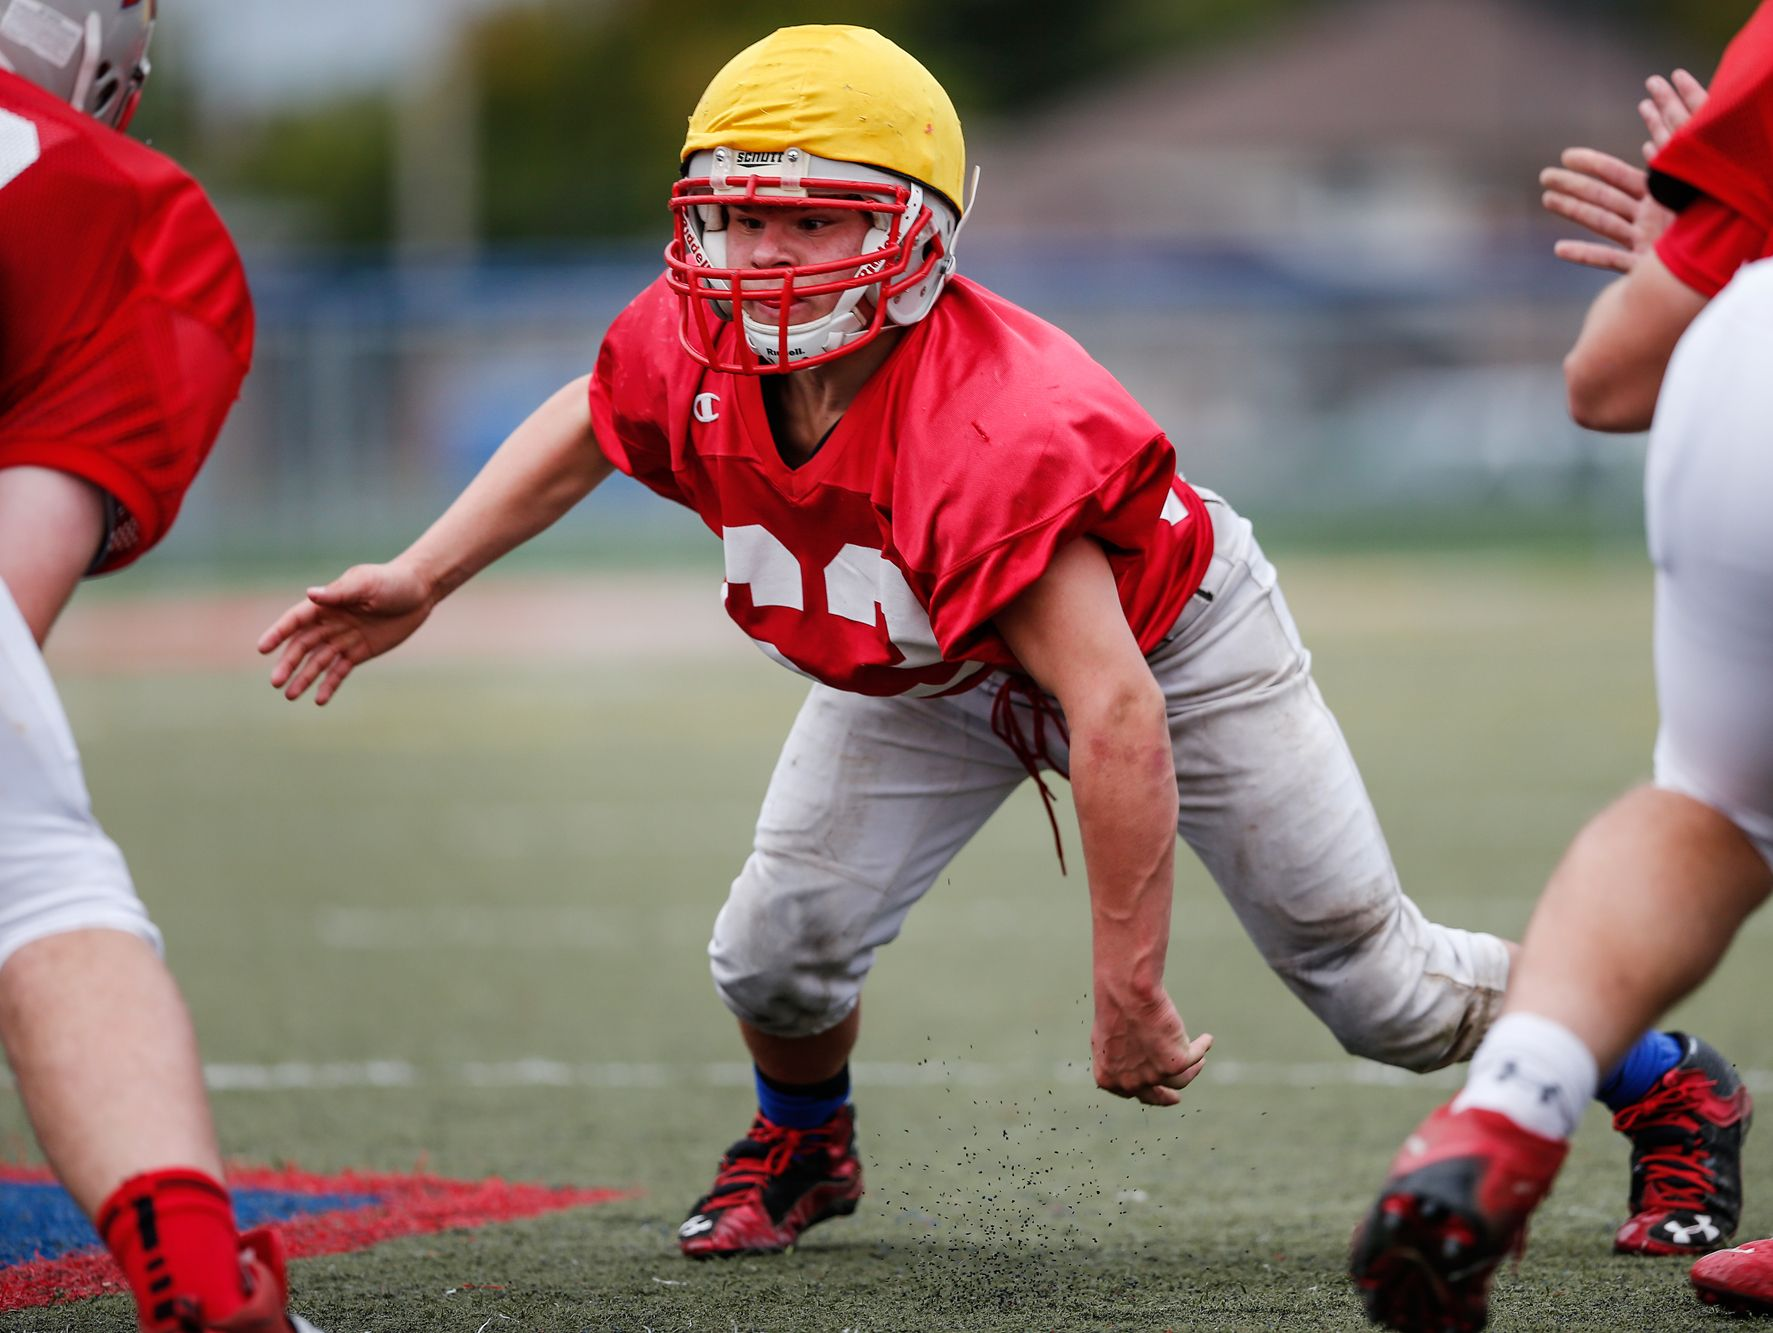 From left, Roncalli Rebels nose tackle Max Quebe, a 5-foot-2-inch, 135-pound Russian adoptee, gets out of his stance and prepares to find the football during practice on Oct. 19, 2016. Roncalli offensive lineman Sean Hornek (79) snaps the ball.